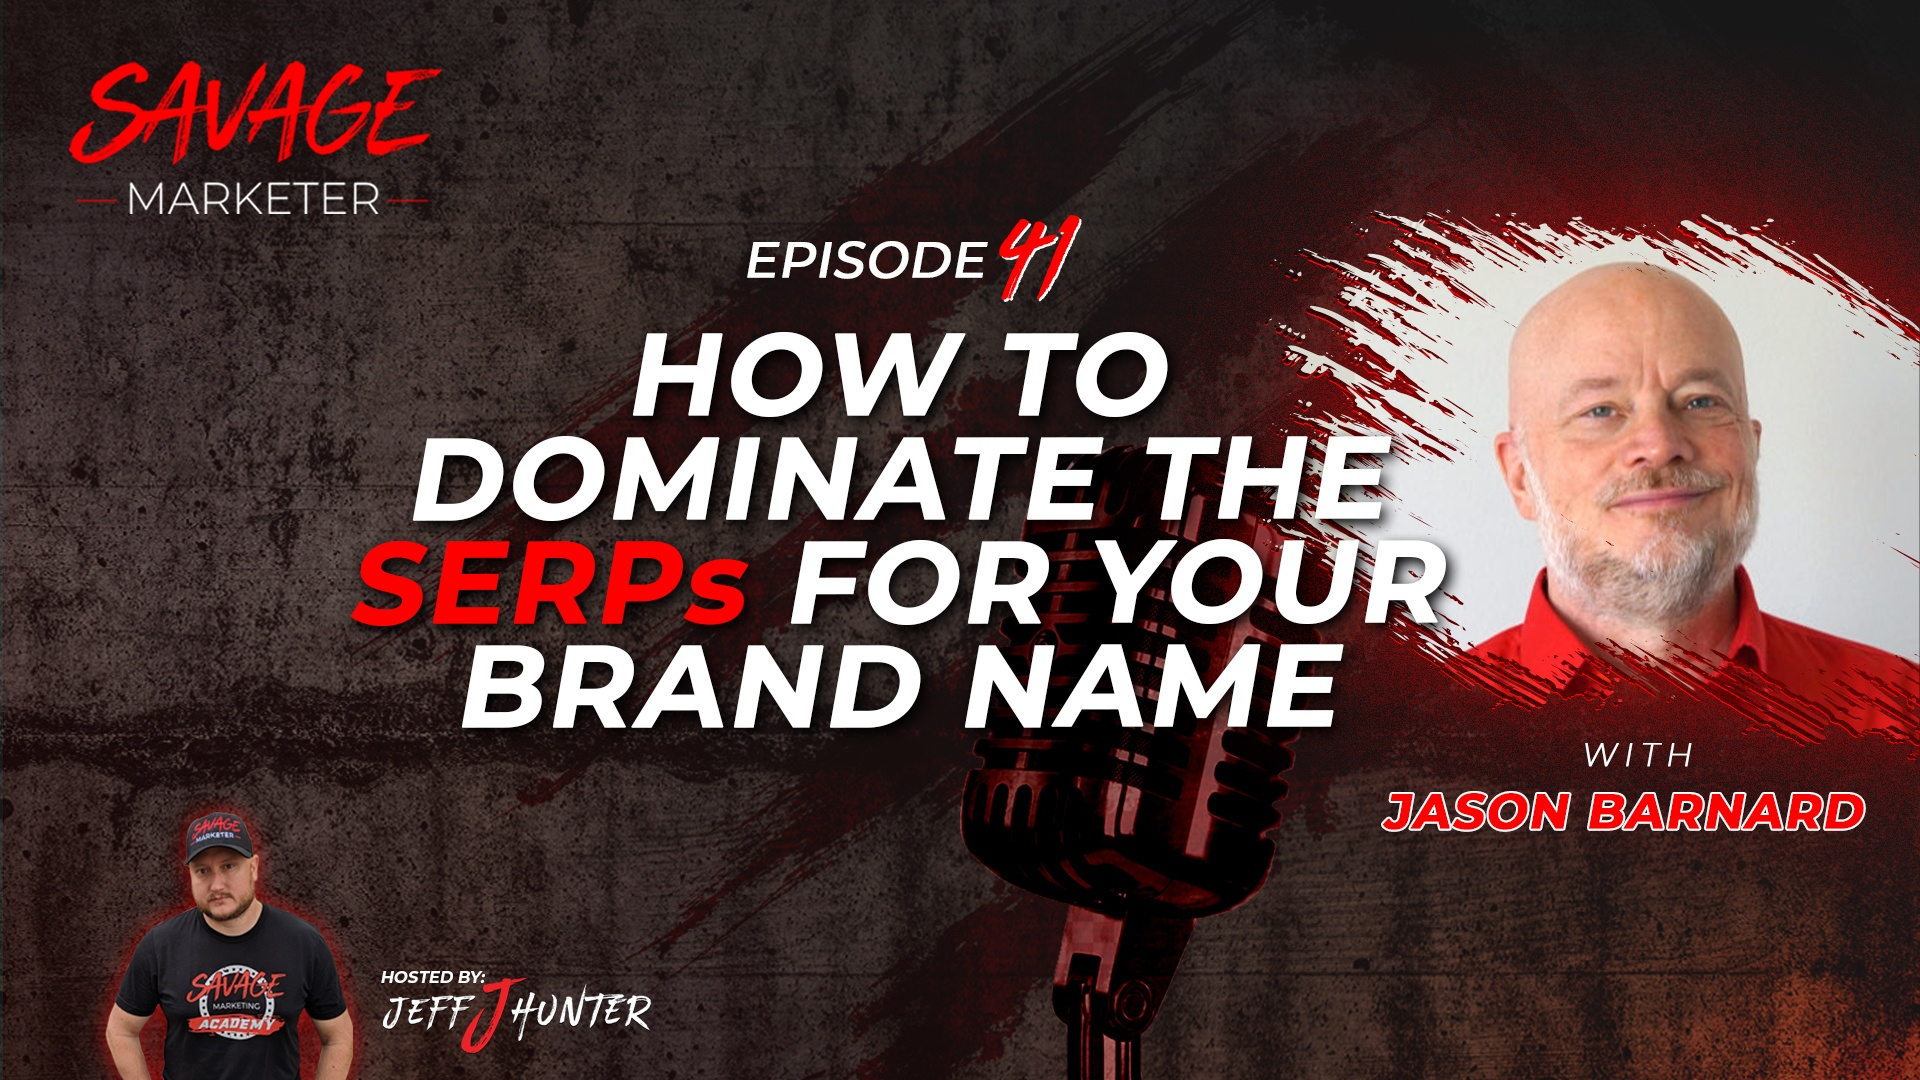 How to Dominate The SERPS For Your Brand Name with Jason Barnard